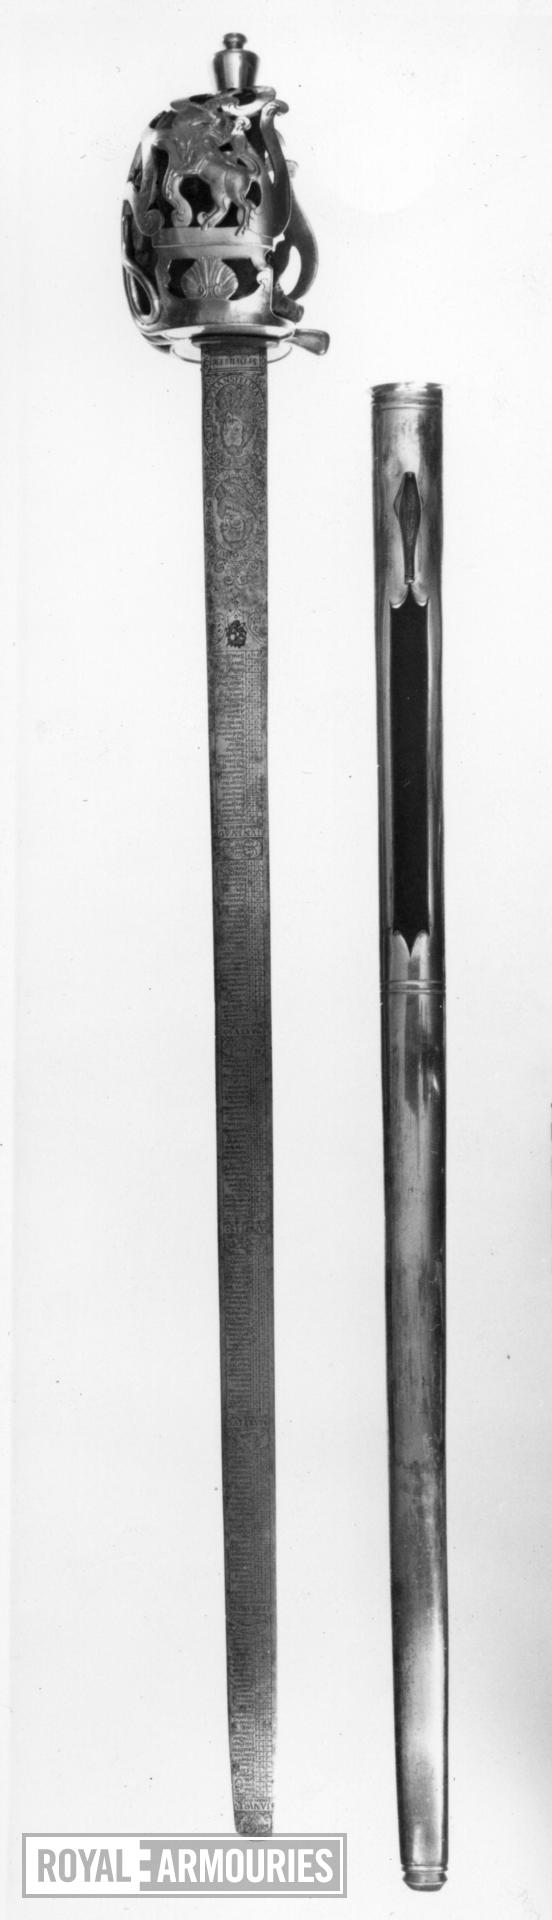 Sword and scabbard Heavy Cavalry Officer's sword and scabbard